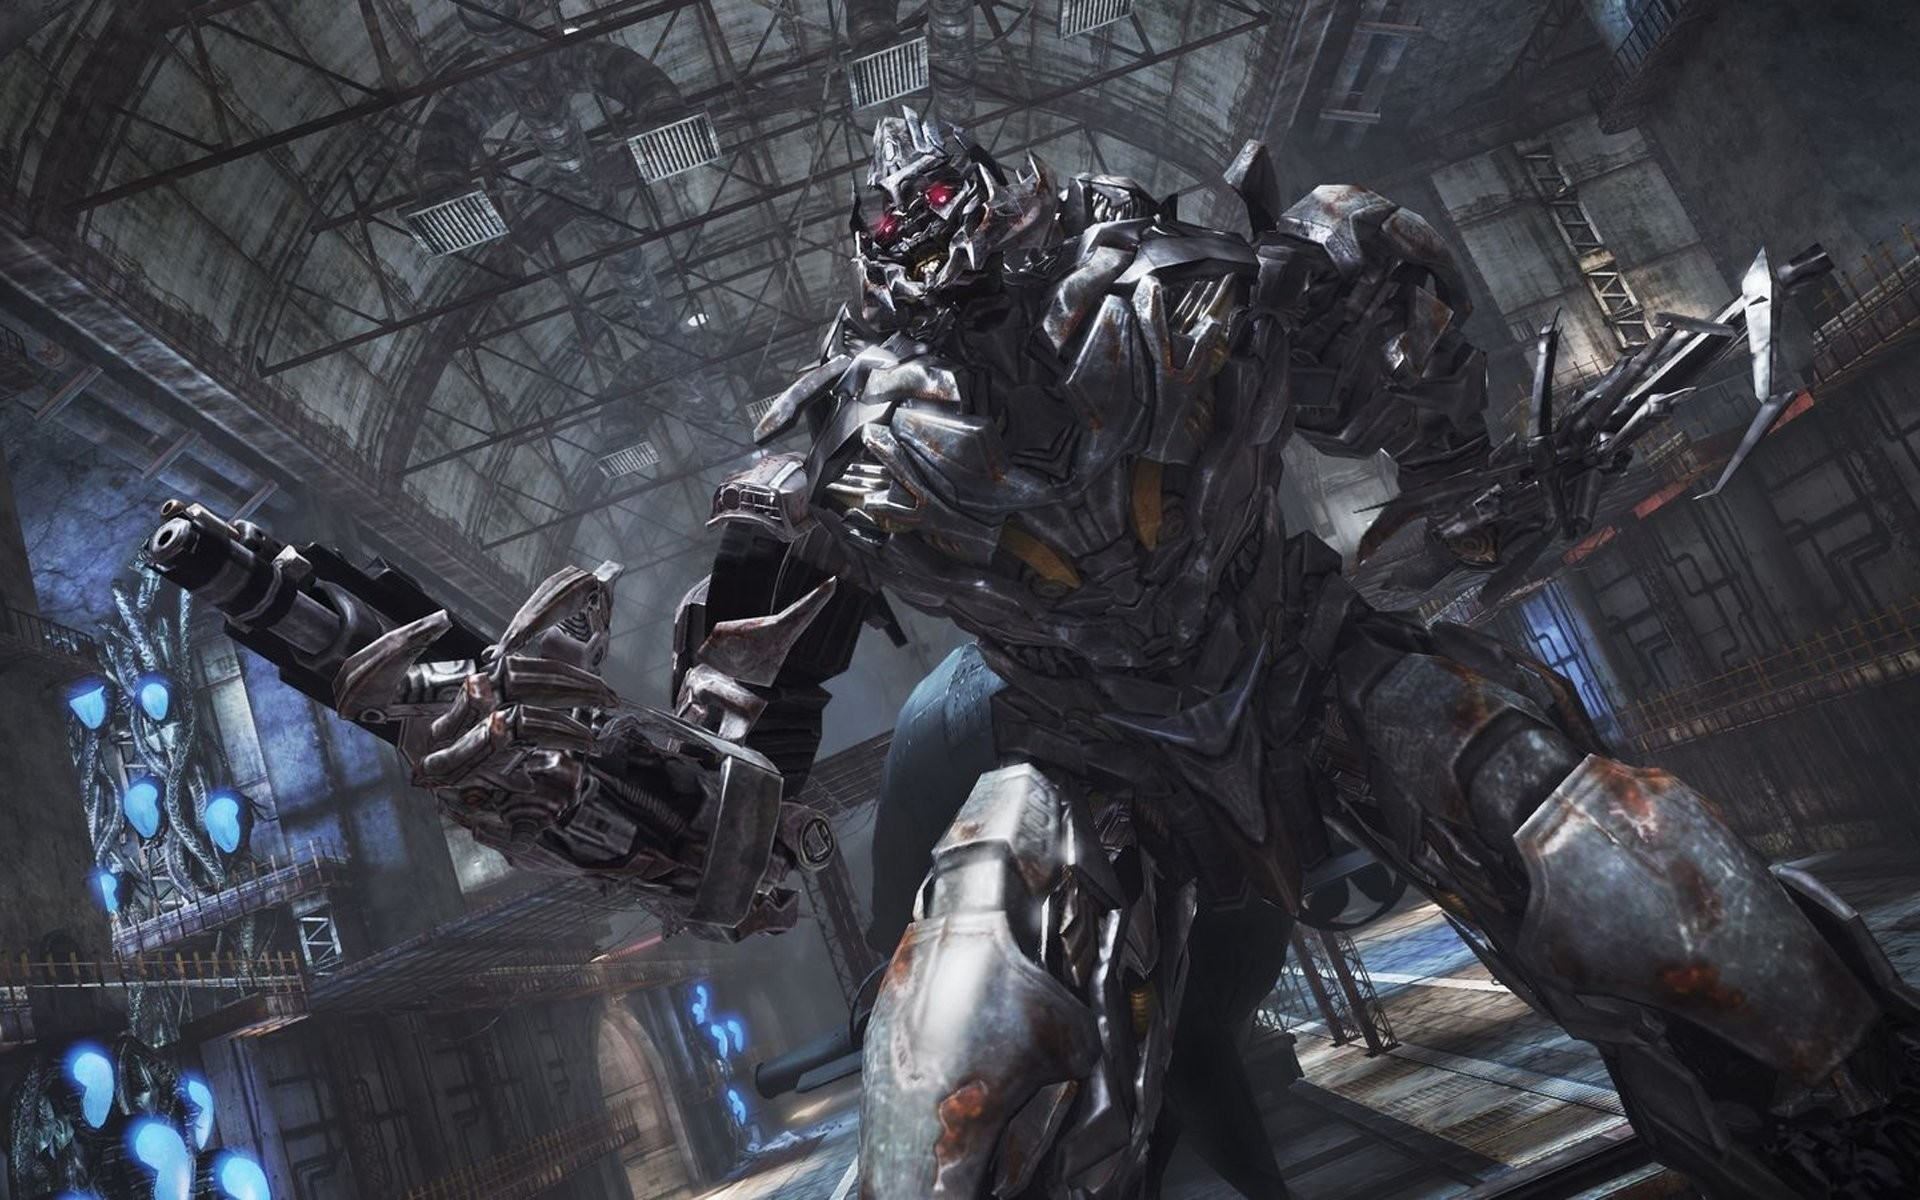 Transformers Fall Of Cybertron Wallpaper 1920x1080 Megatron Wallpapers 61 Images